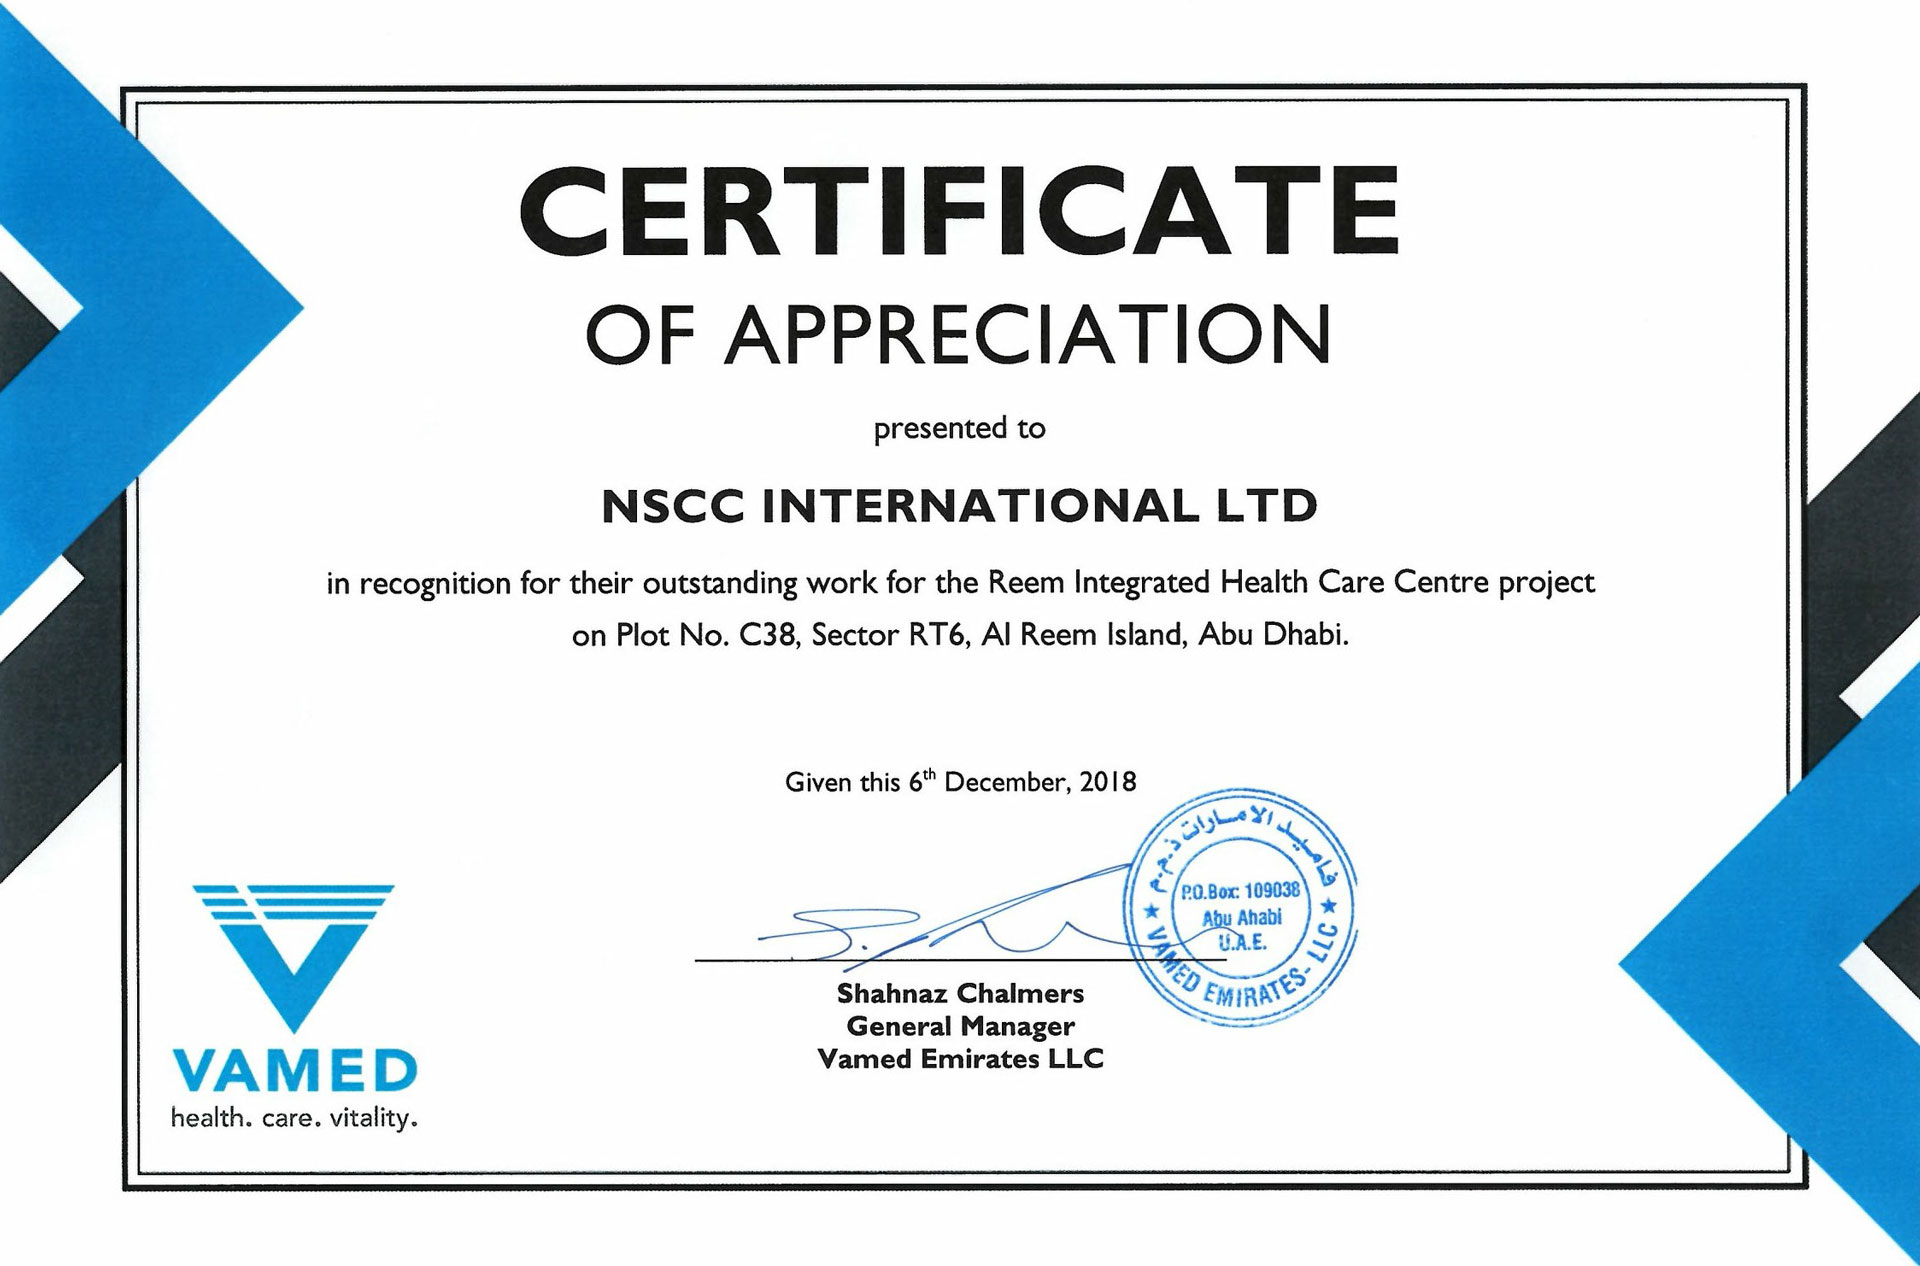 Certificate of Appreciation for Reem Integrated Health Care Centre Project